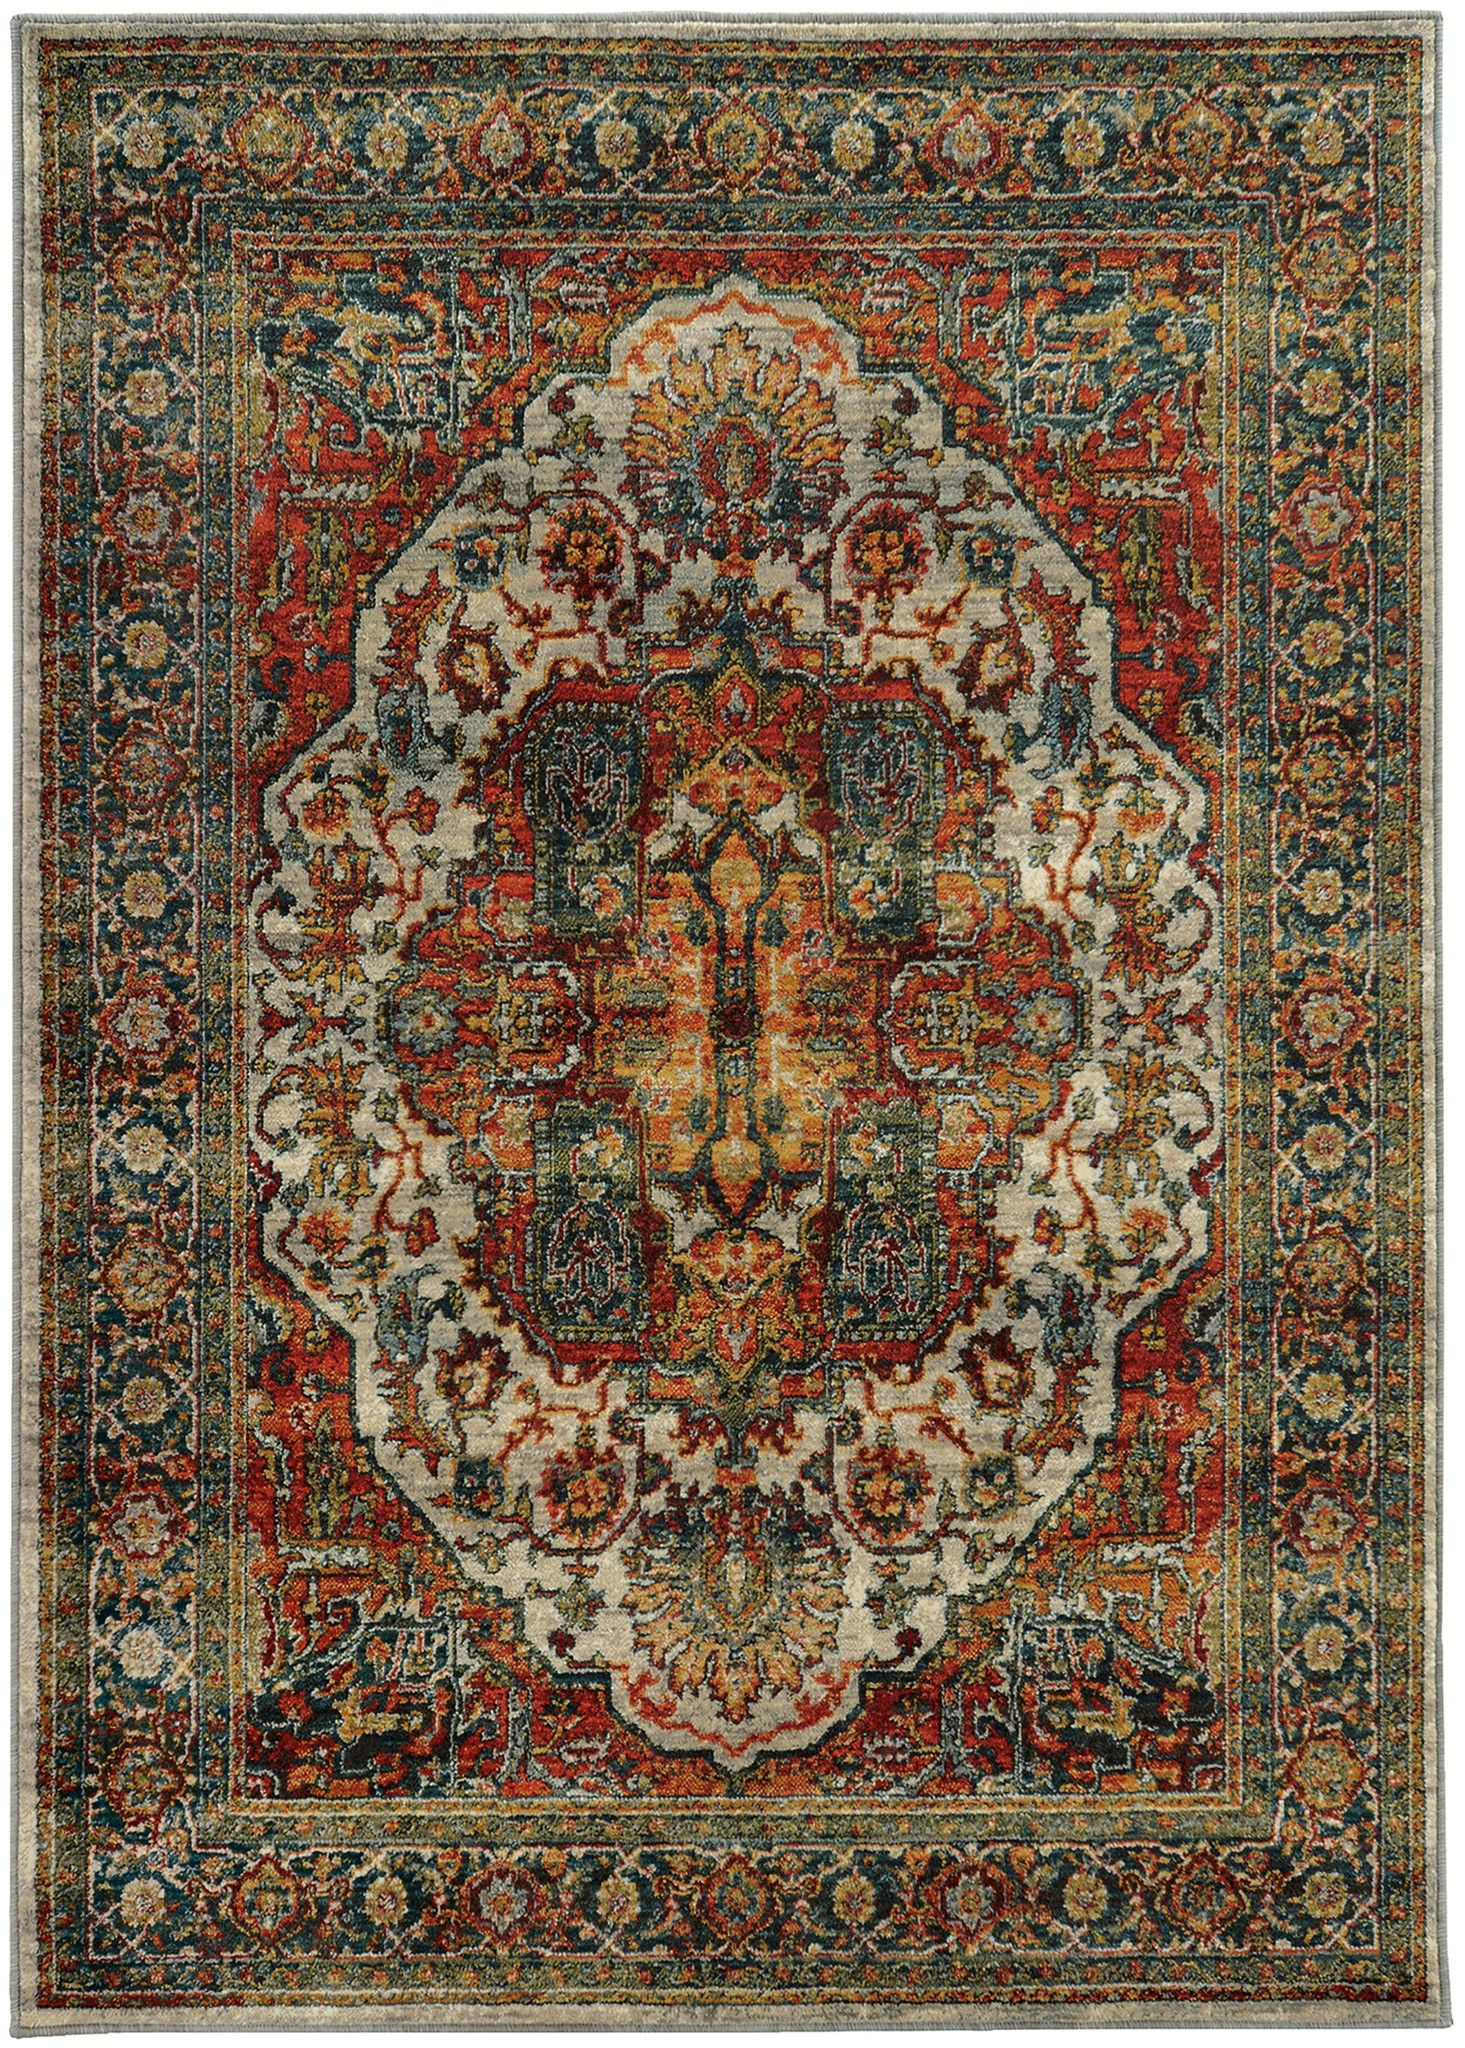 red orange and teal blue turkish style rug | red and teal, rugs